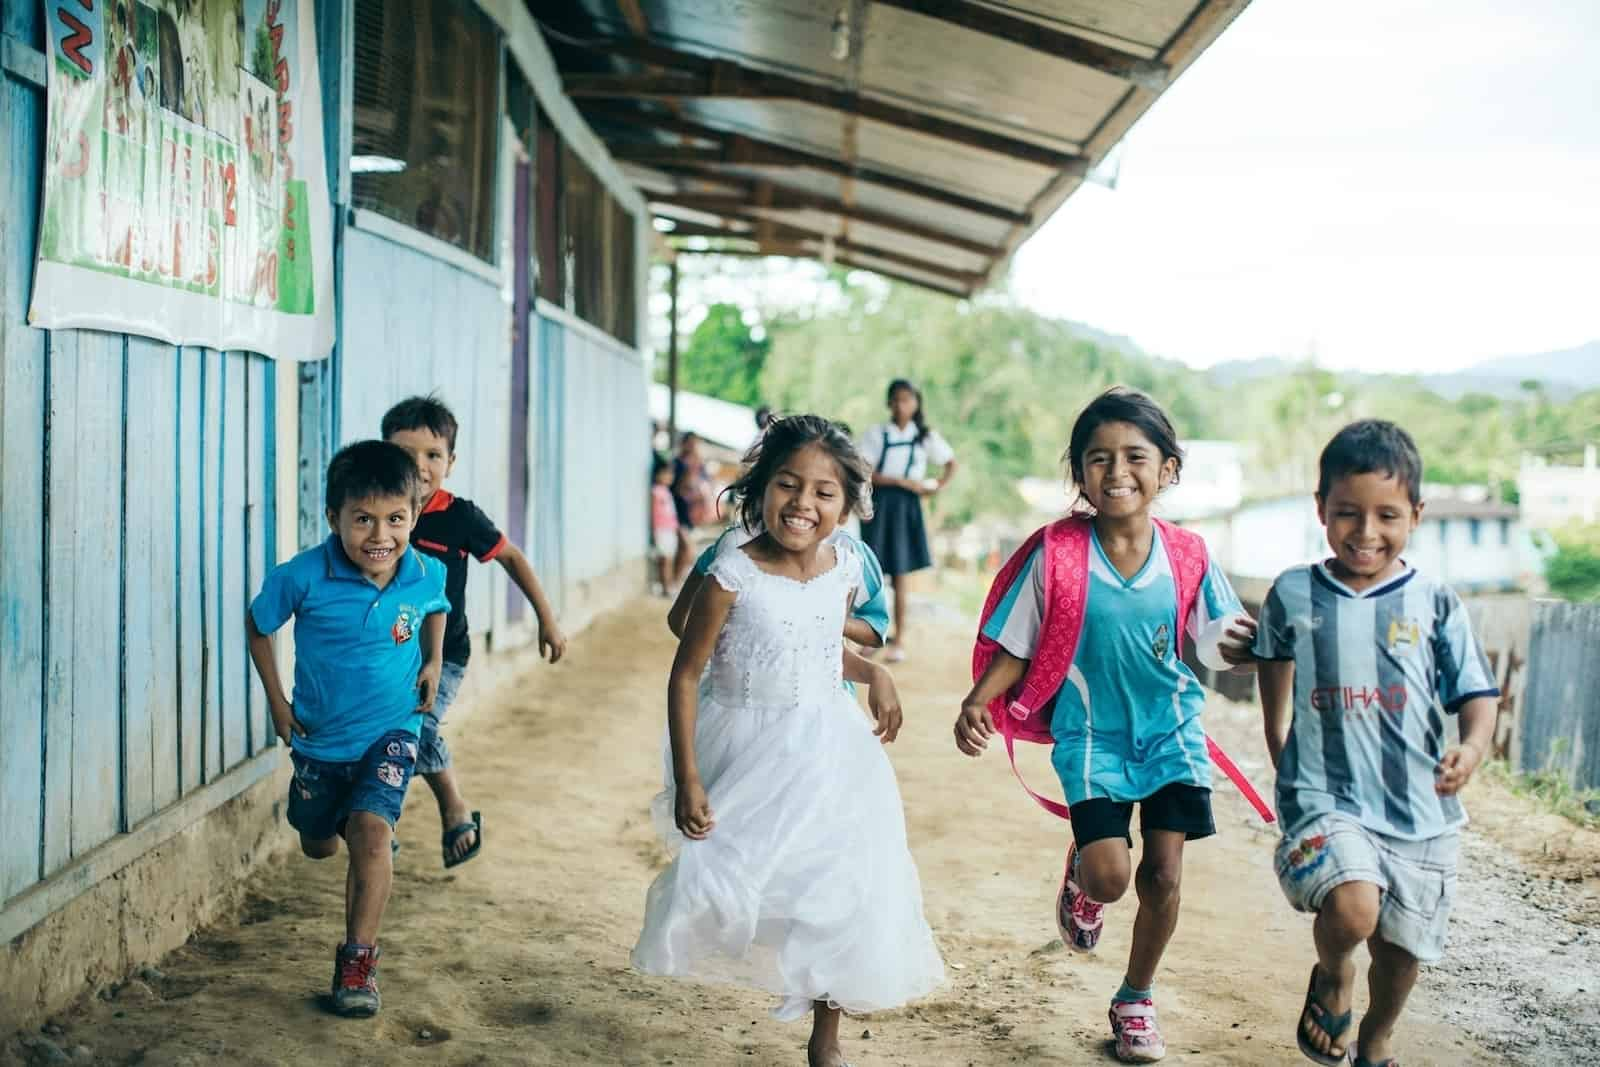 A group of children run down a path in Peru, next to a row of blue classrooms.